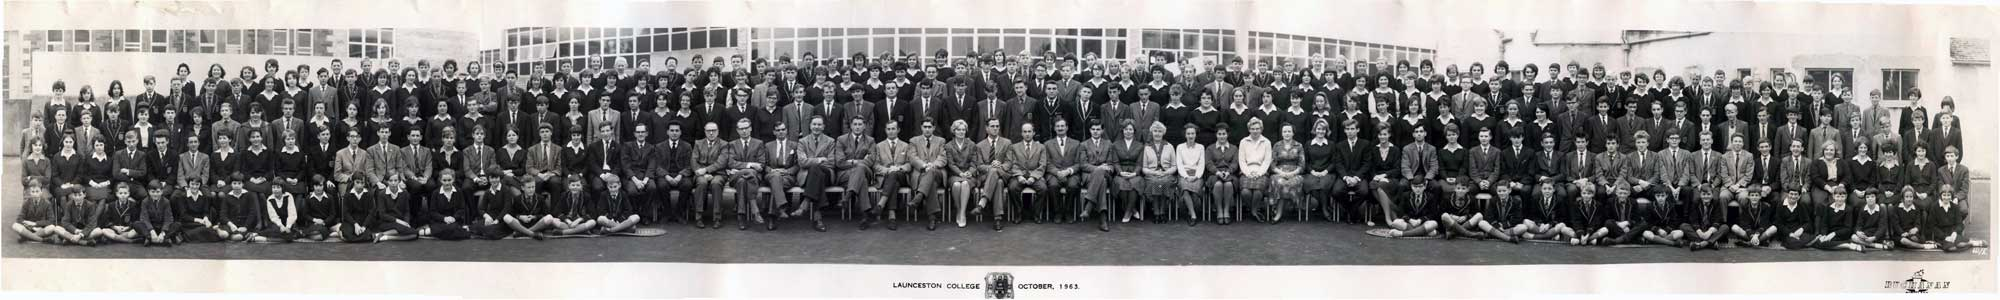 Launceston College 1963-64.